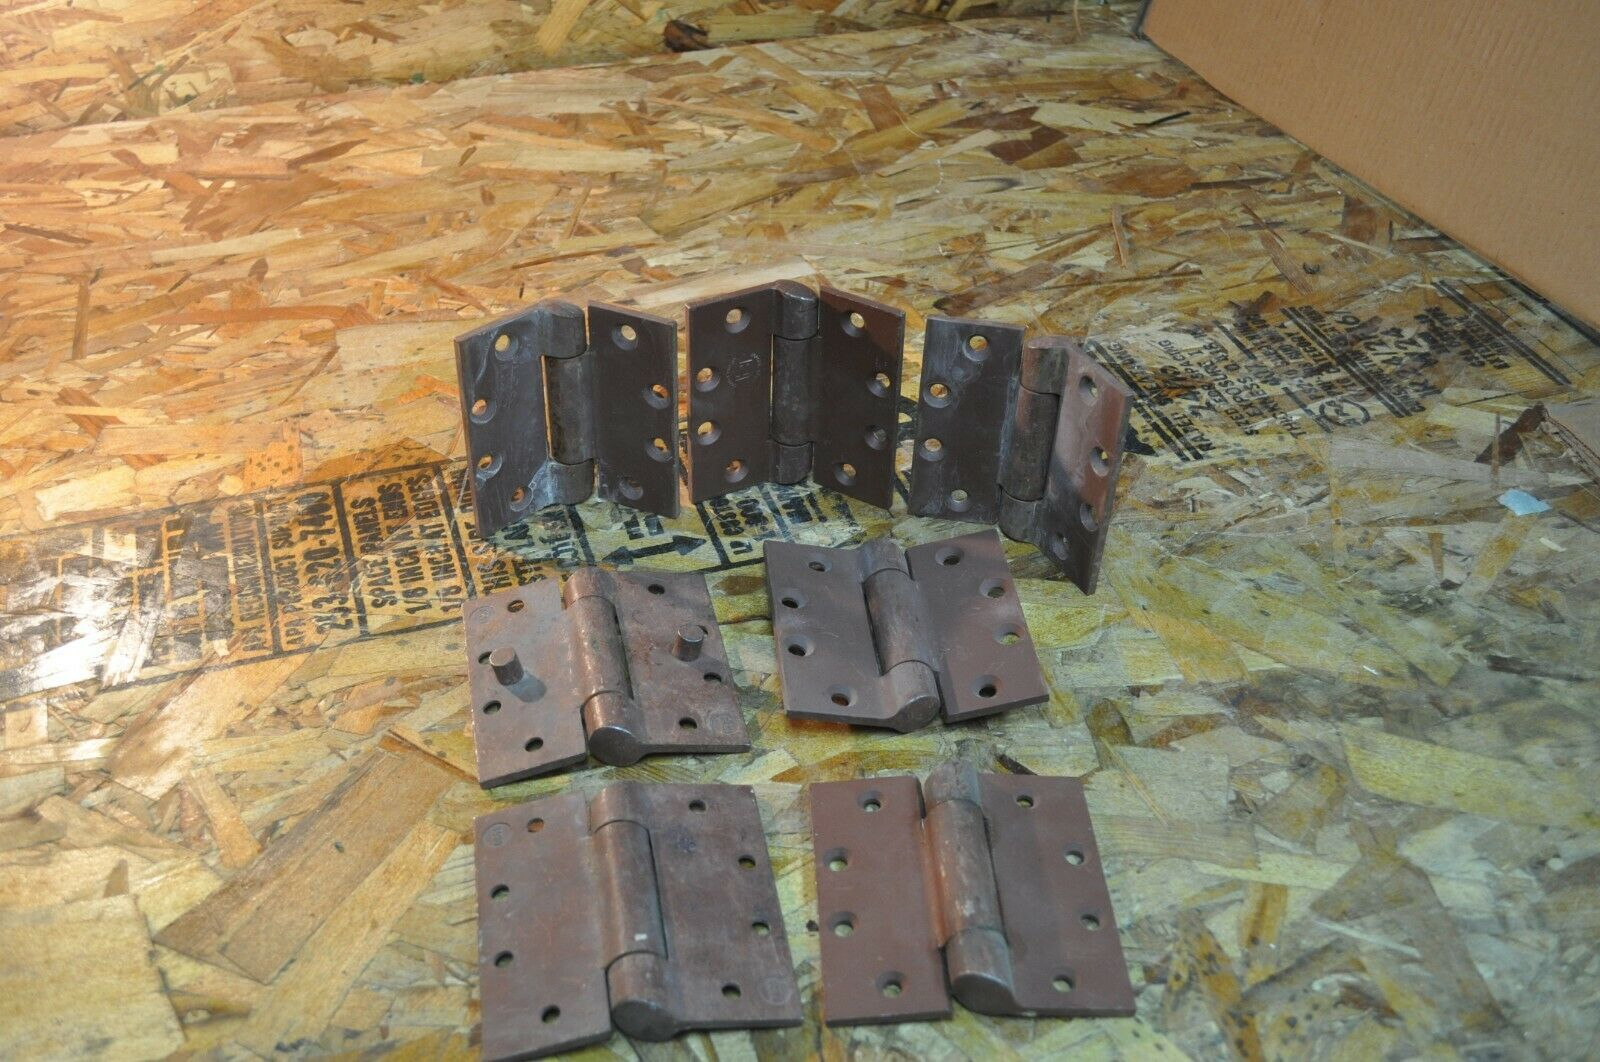 LOT OF 7 SOUTHERN FOLGER HOSPITAL JAIL PRISON TIP HINGE 4.5  X 4.5  FREE SHIP